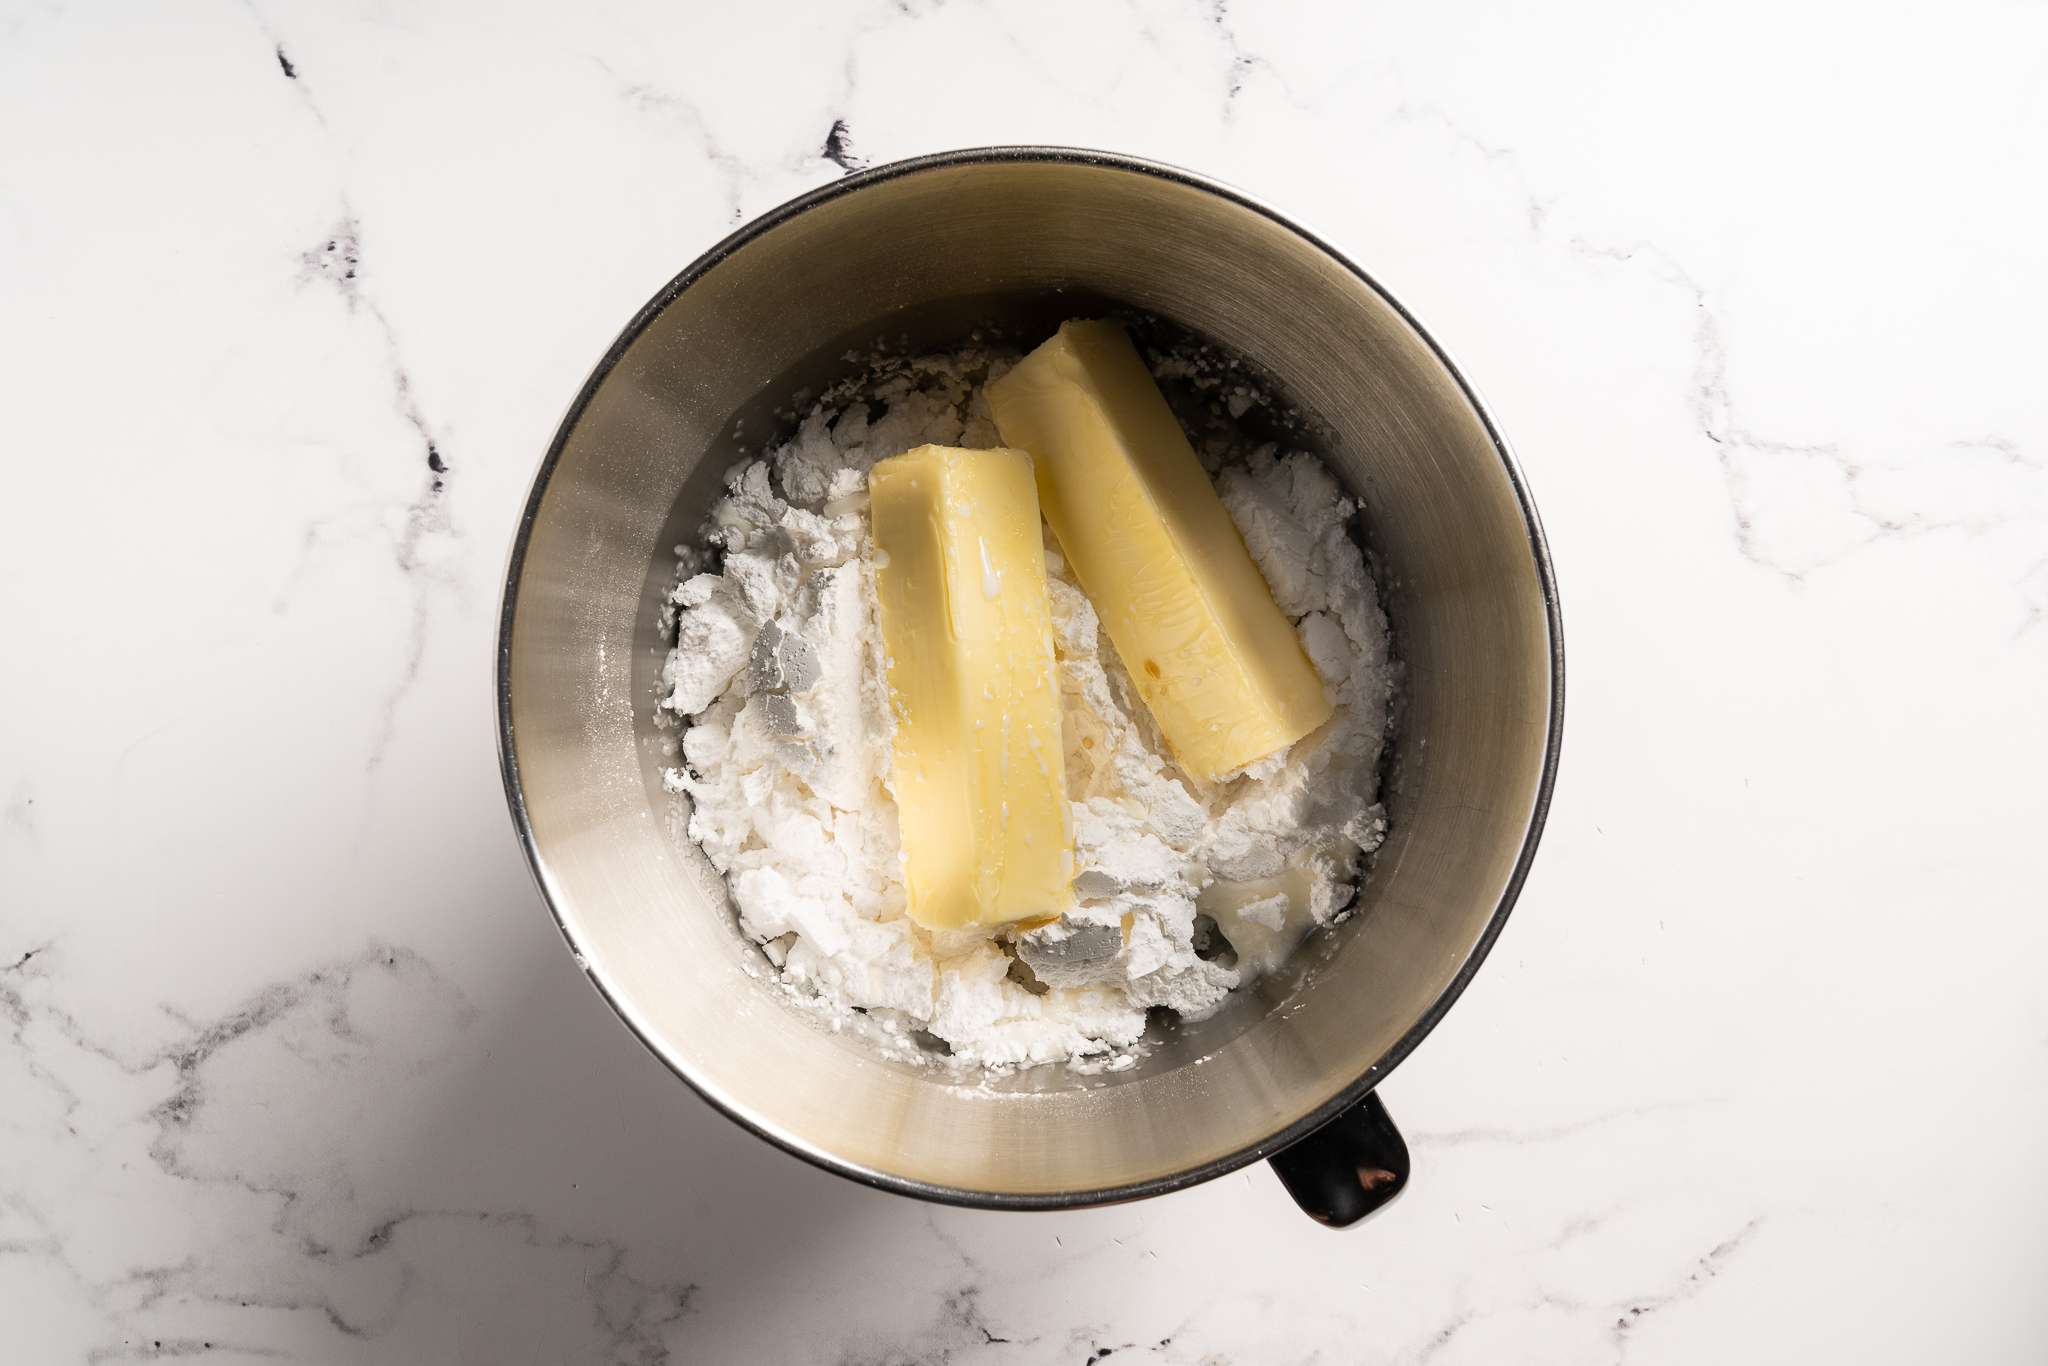 Frosting ingredients in a mixing bowl